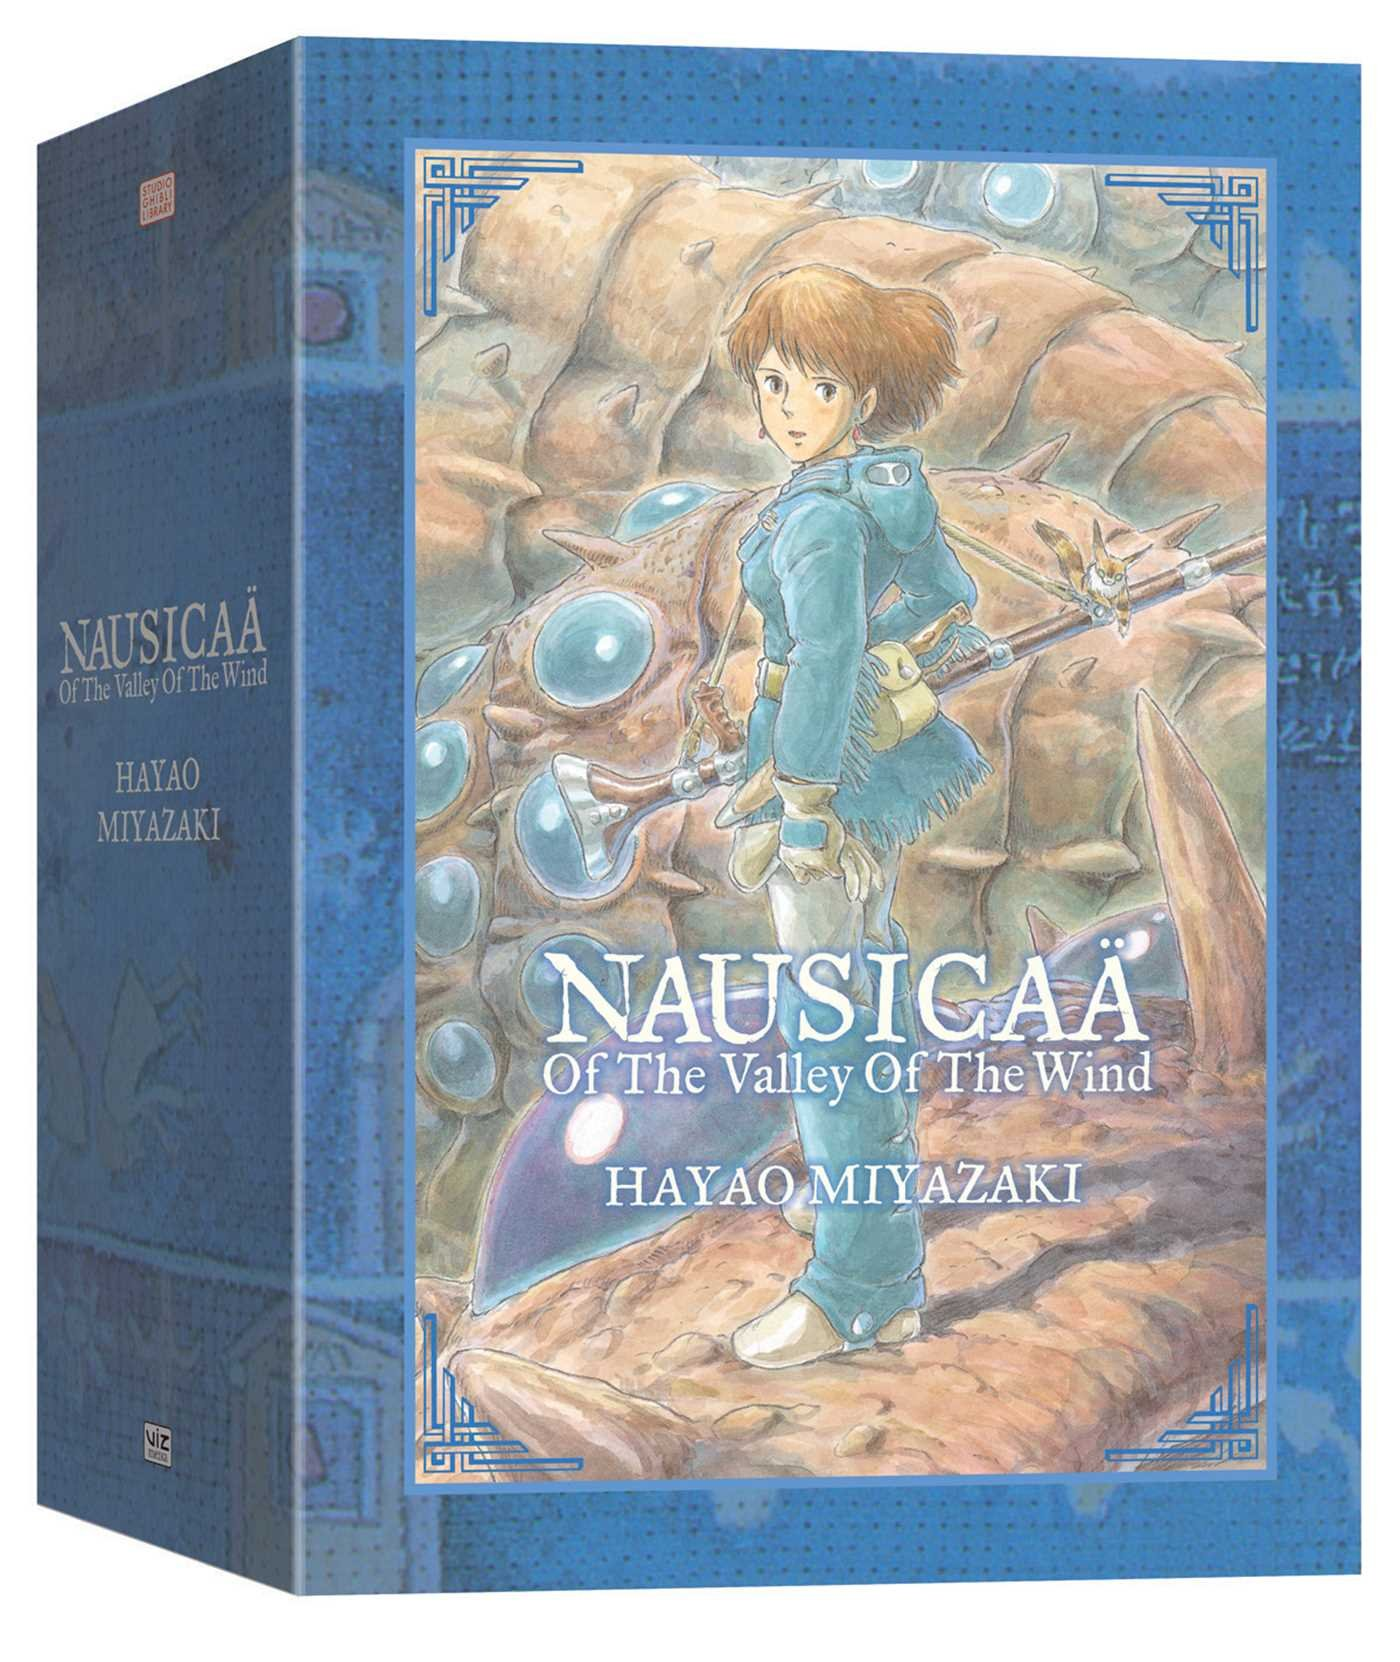 Nausicaä of the Valley of the Wind Box Set (Nausicaa of the Valley of the Wind) by VIZ Media LLC